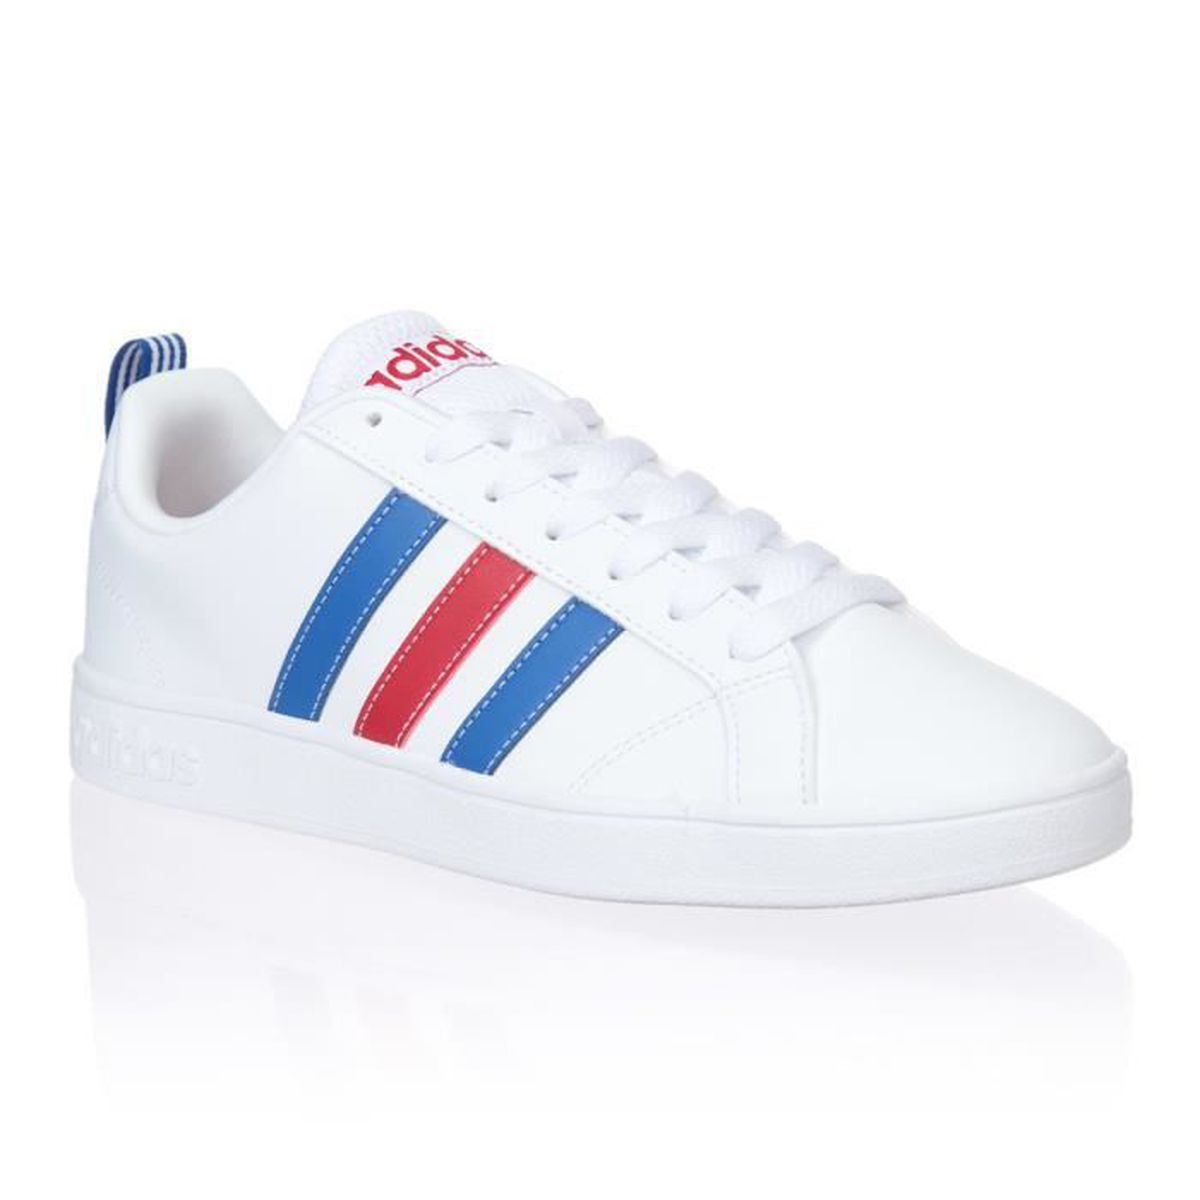 BASKET ADIDAS ORIGINALS Baskets VS Advantage - Homme - Bl